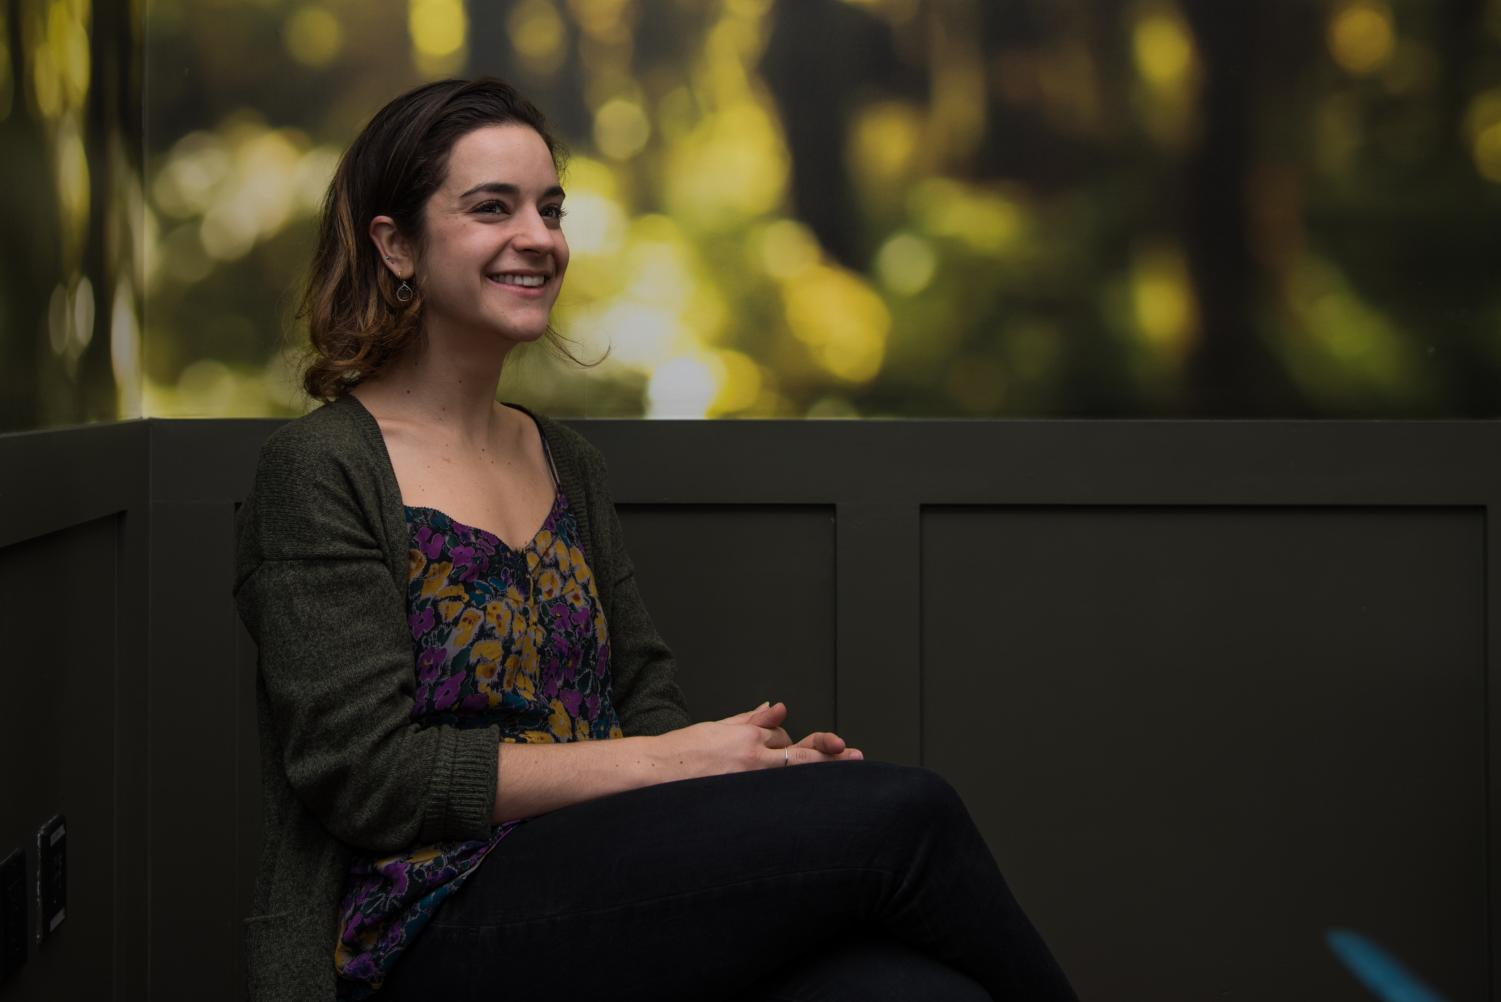 Alyssa Petersel (LMSW '17) is the CEO and Founder of My Wellbeing, a company that promotes mental health by connecting people with therapists and health resources.